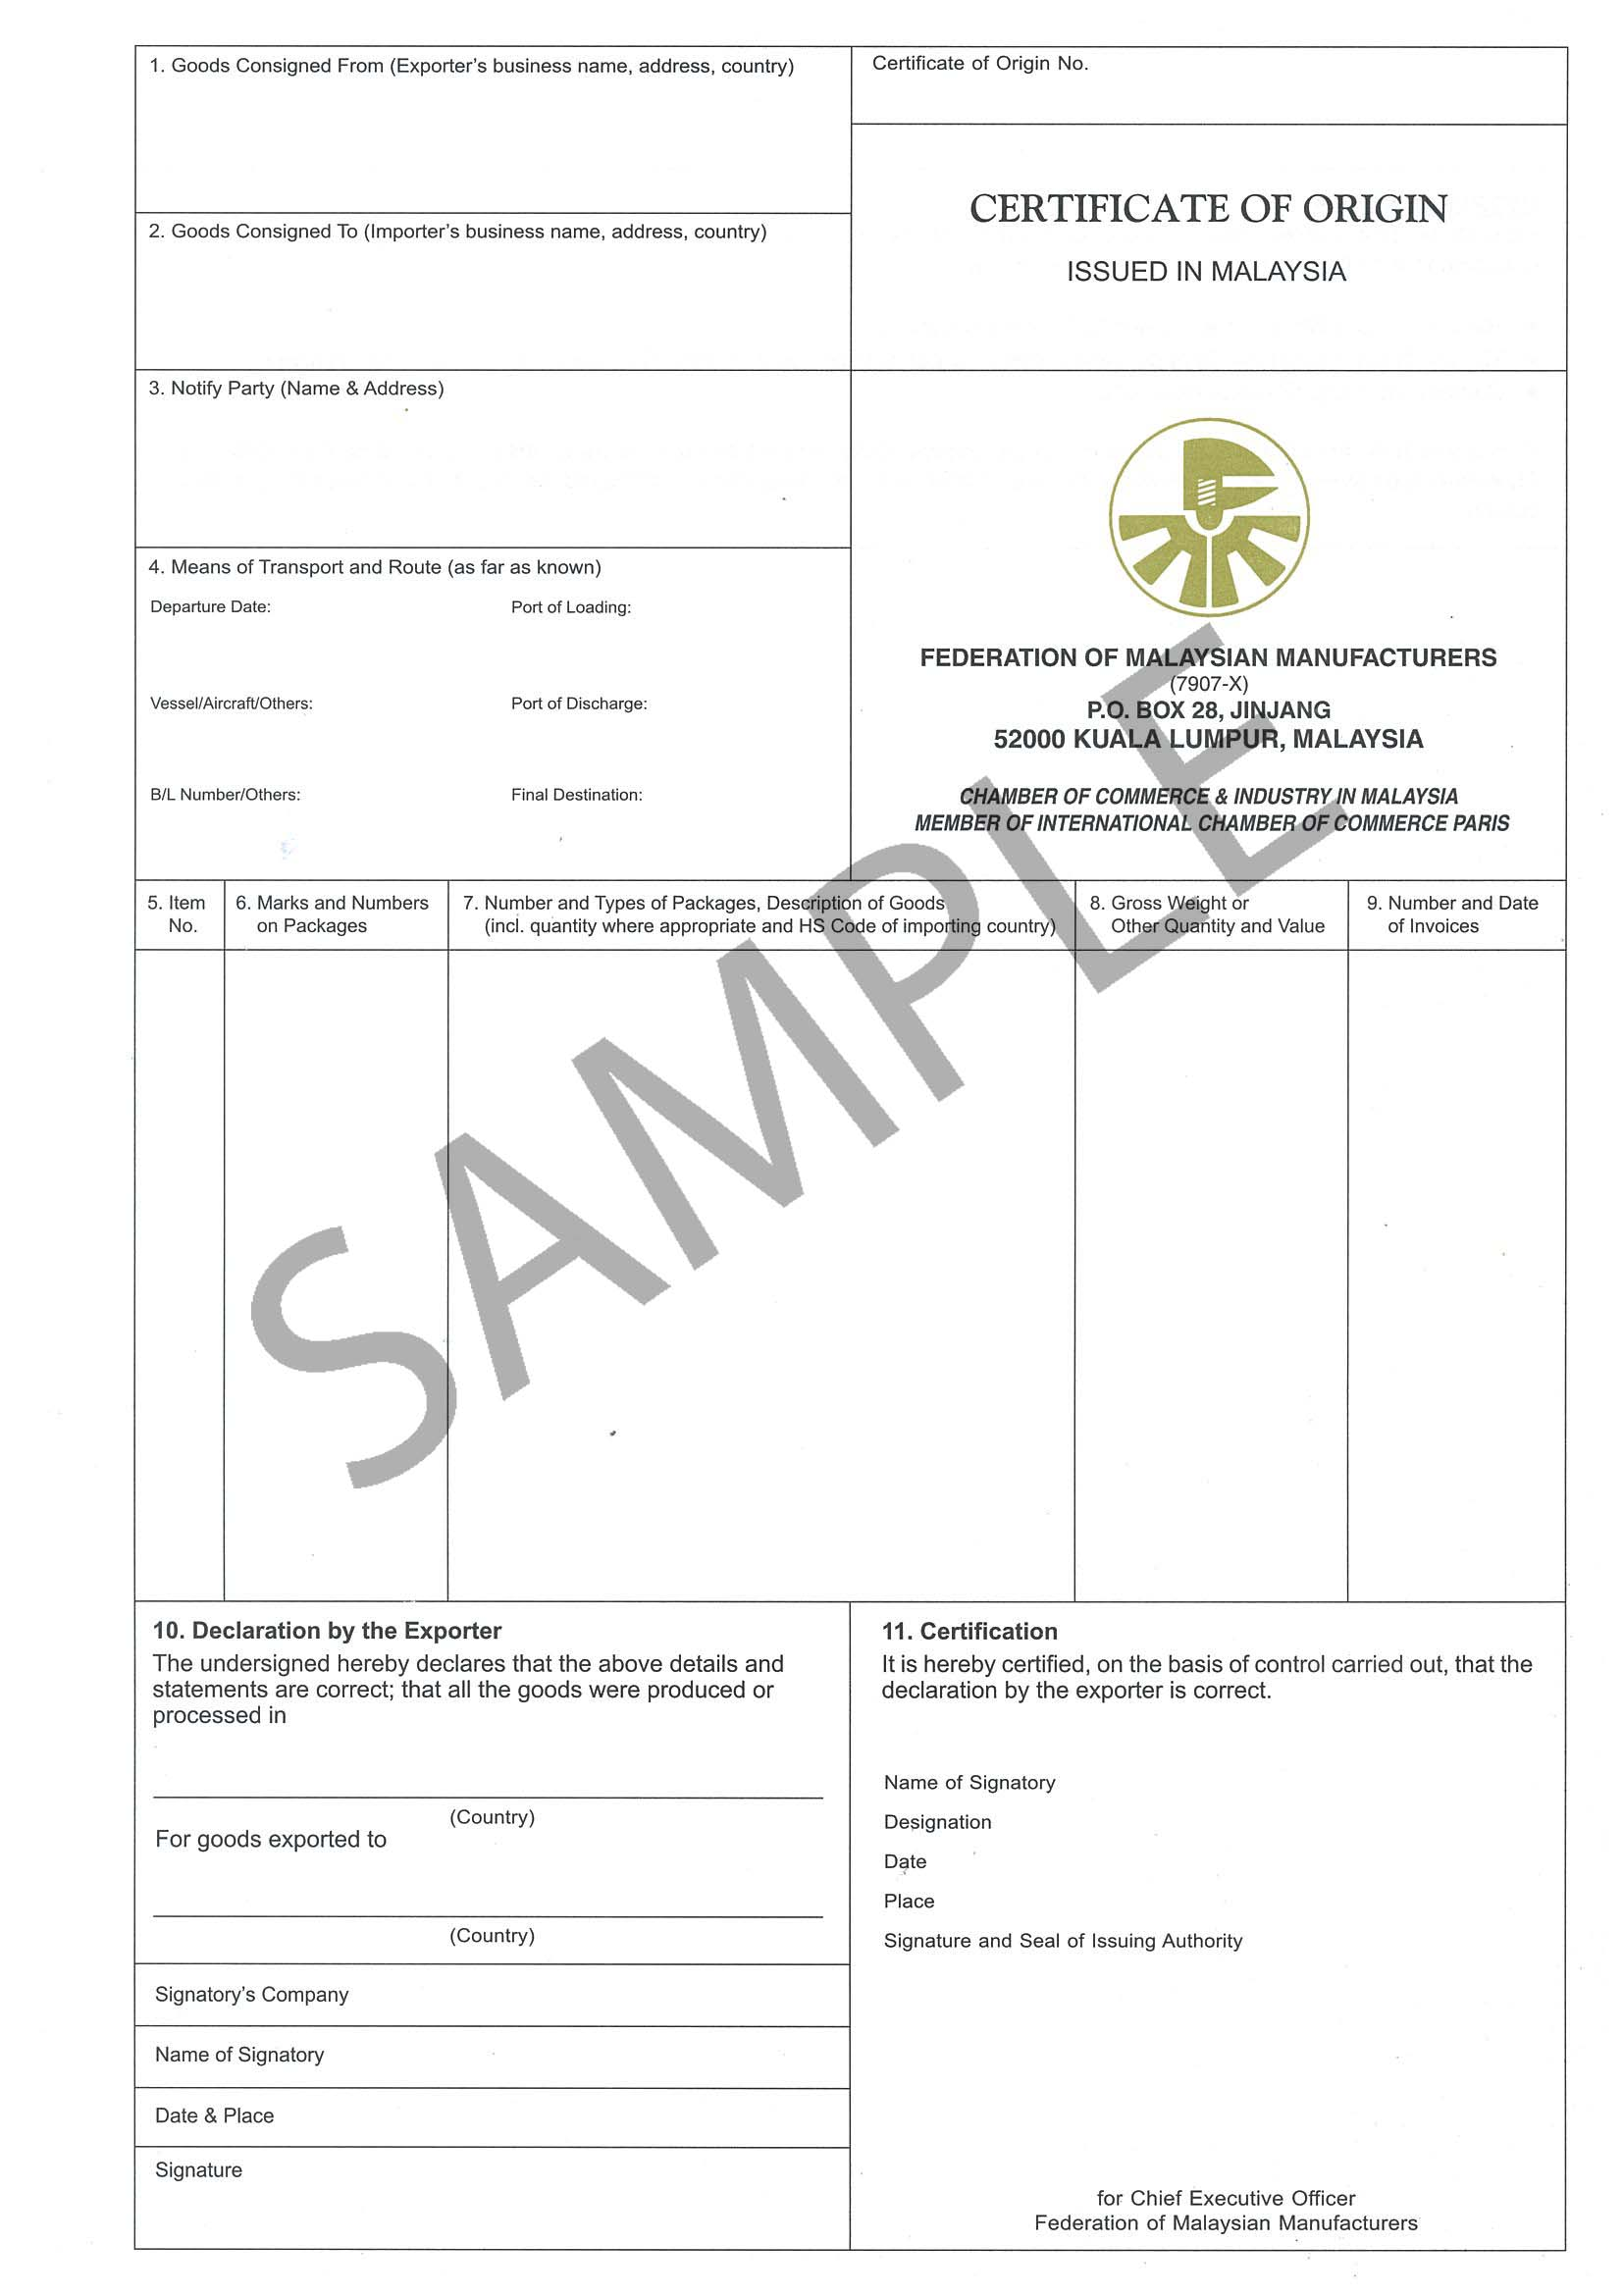 certificate of origin – Sample Certificate of Origin